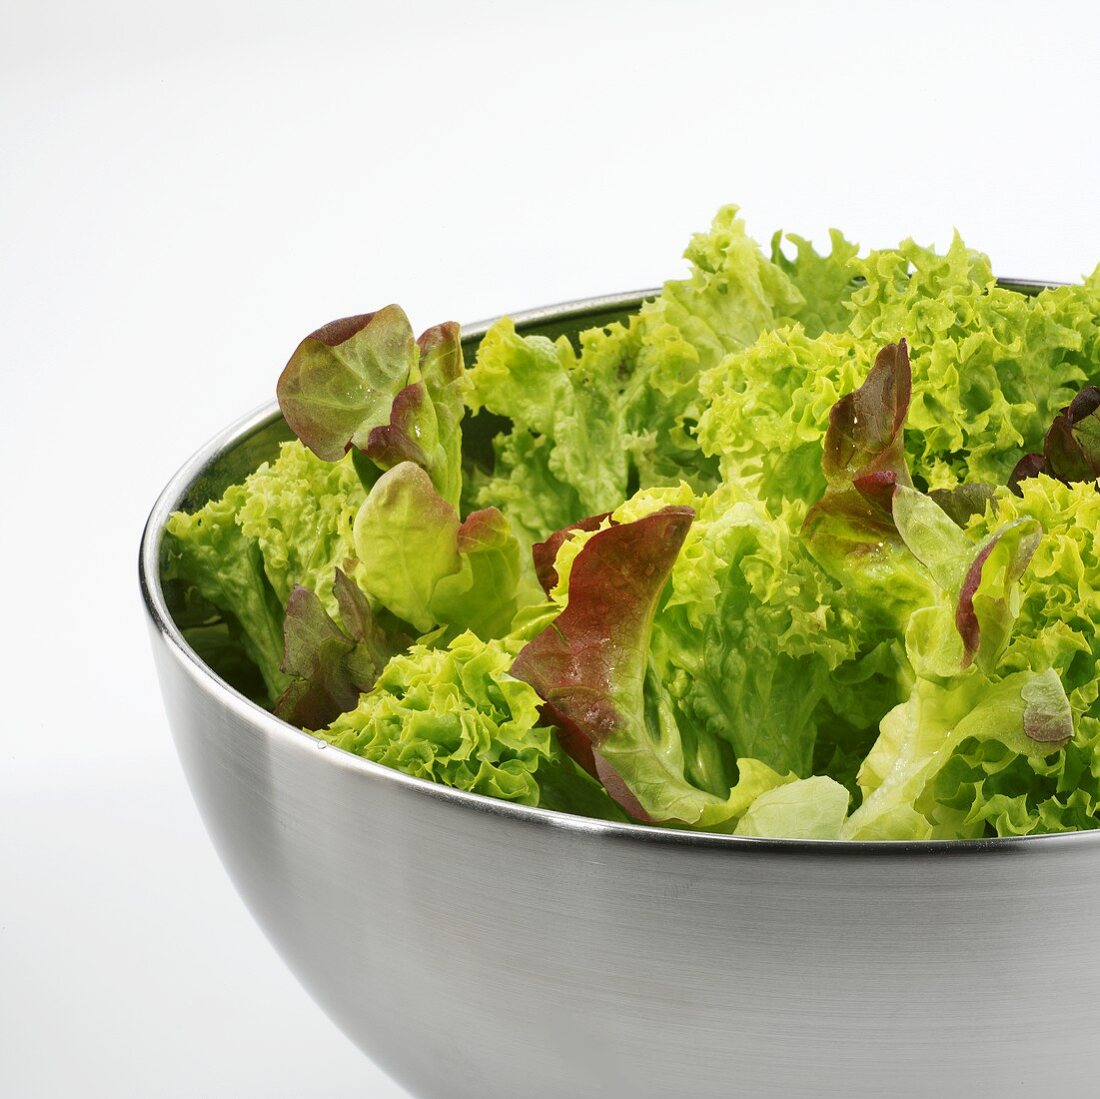 Green salad in stainless steel bowl